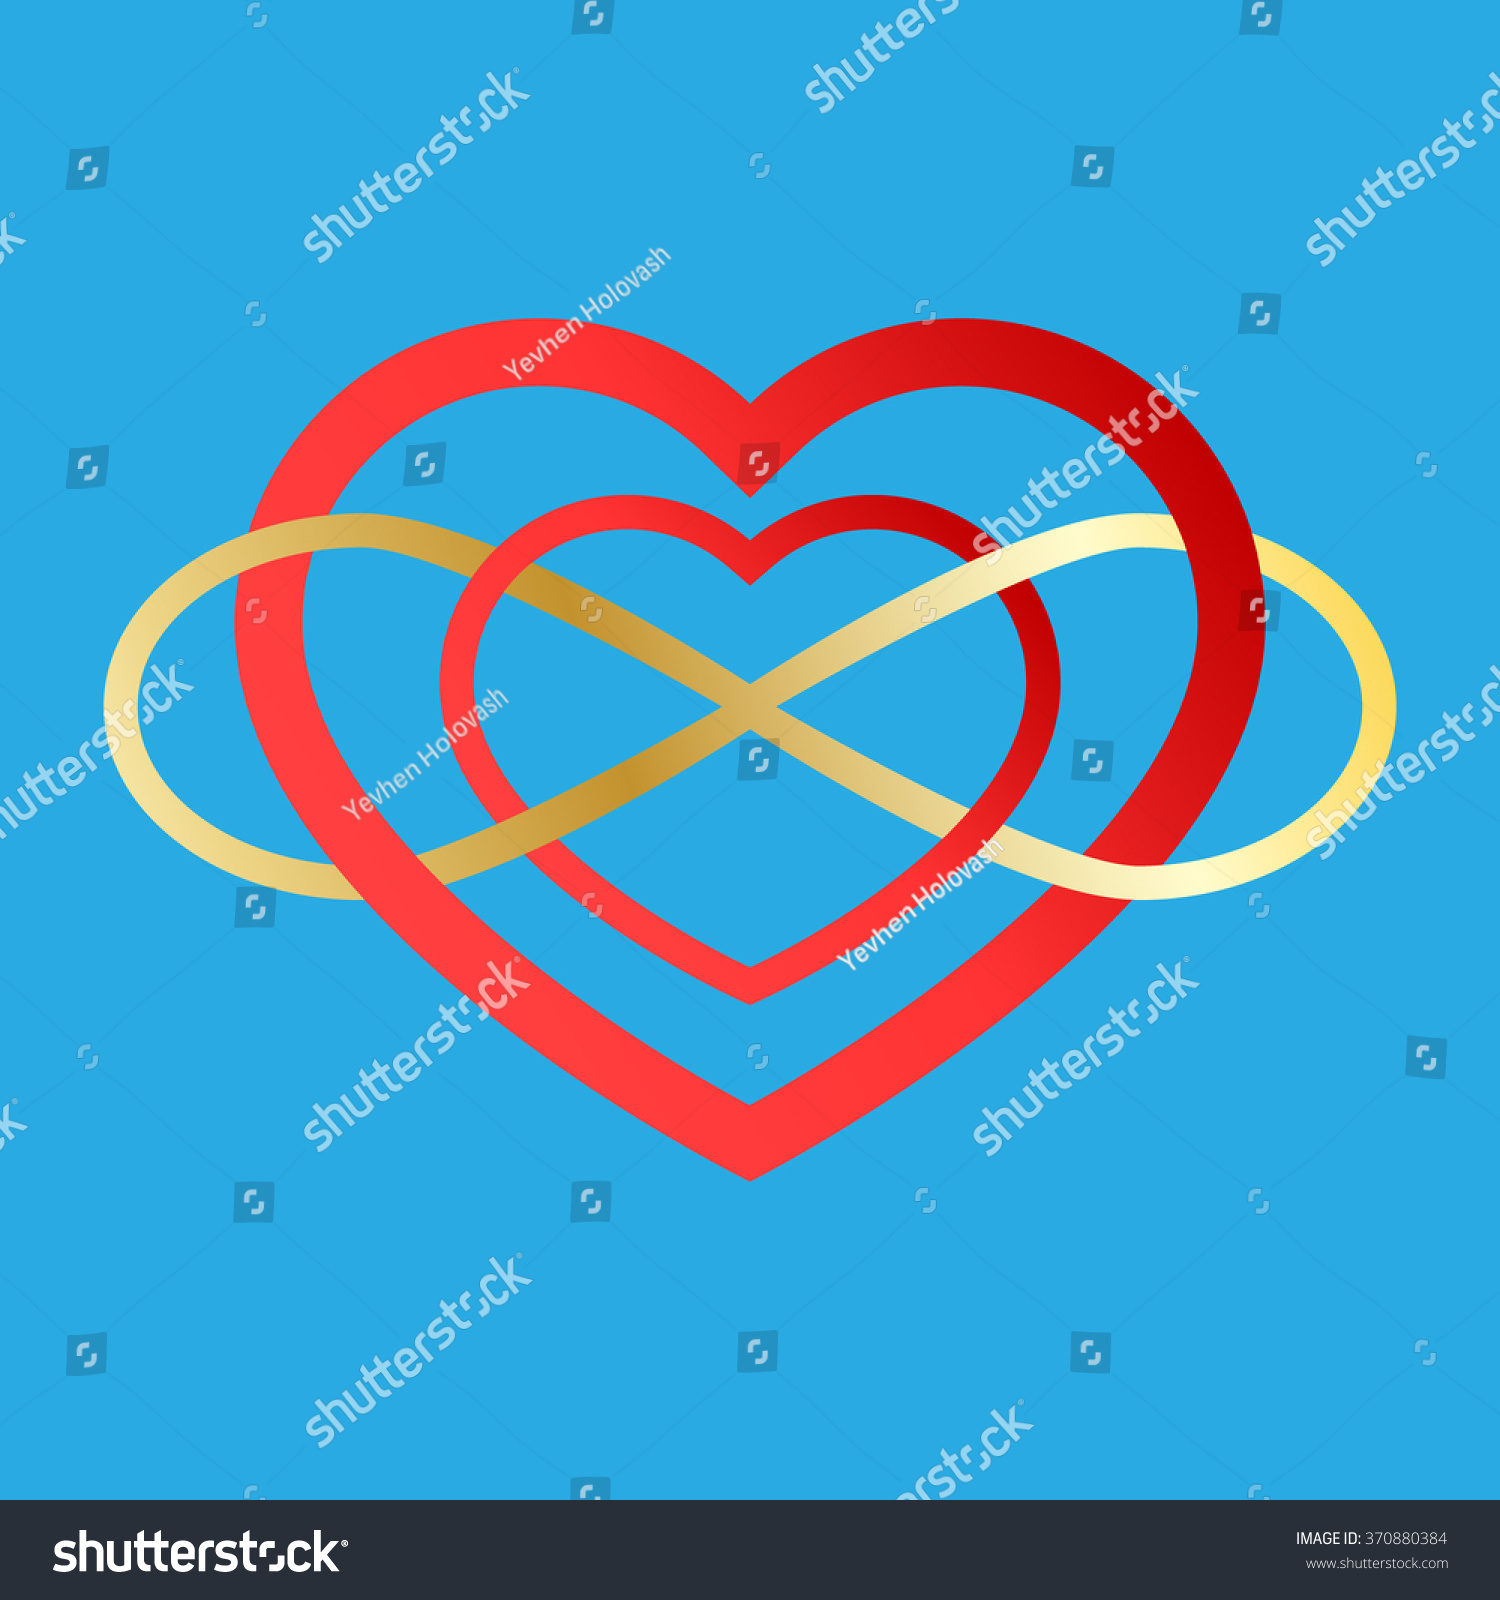 Vector infinity icon illustration eternity symbol stock vector illustration of an eternity symbol placed on a red heart love biocorpaavc Images